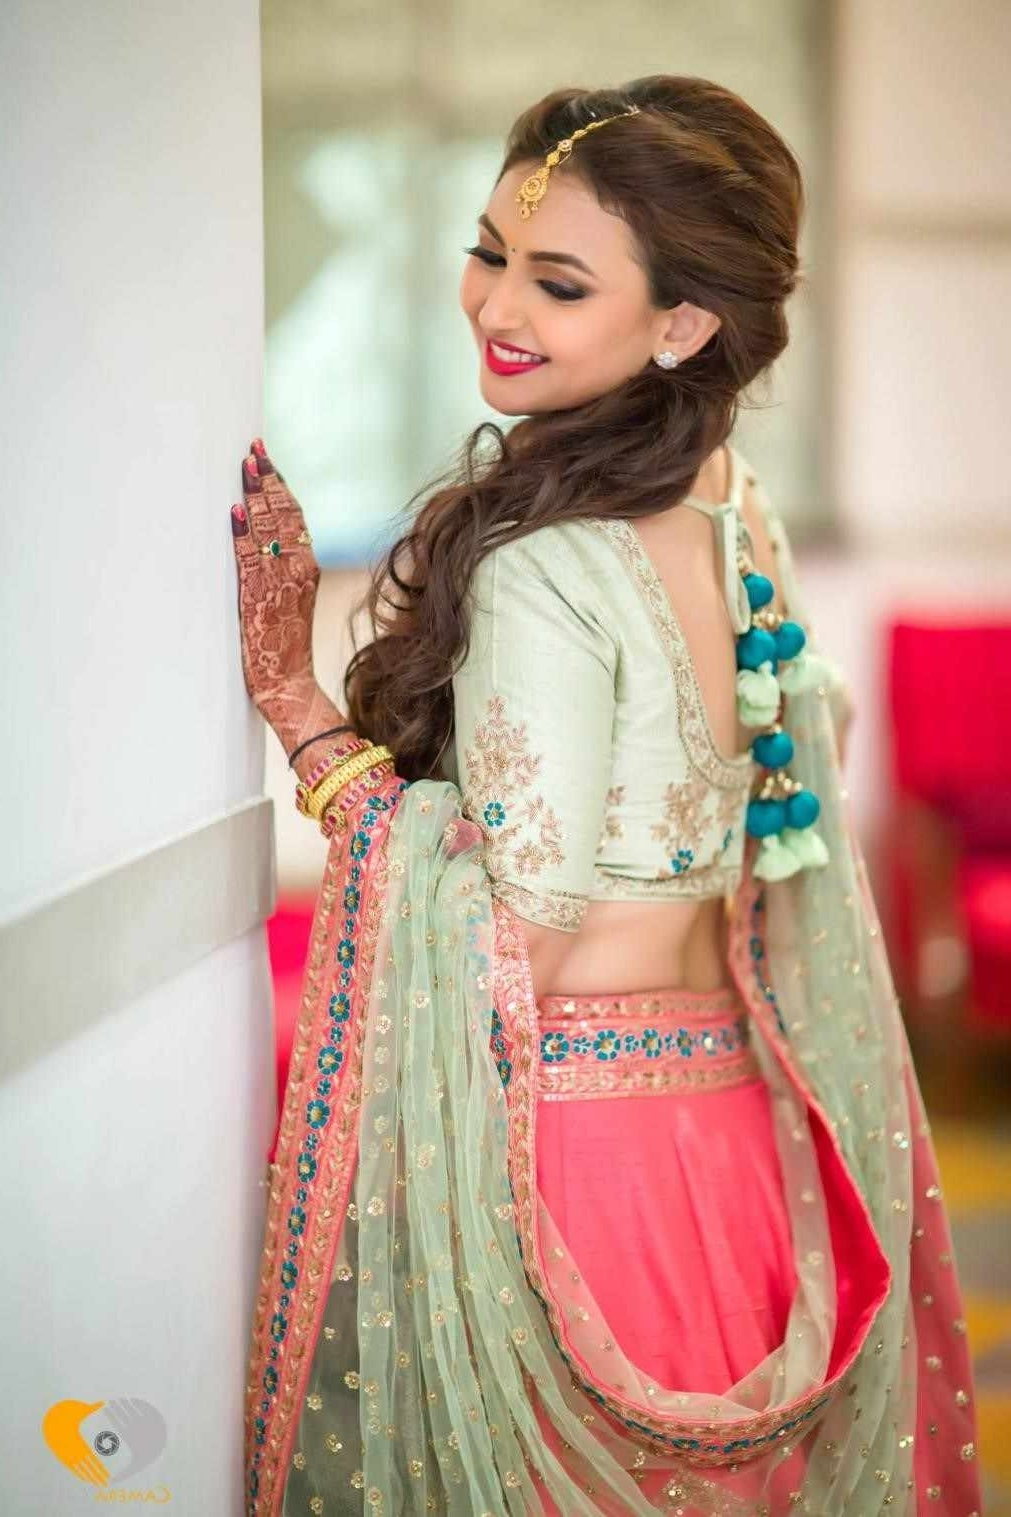 Best Hairstyle For Engagement In Lehenga Hairstyles For Lehenga In Preferred Wedding Hairstyles For Lehenga (View 3 of 15)